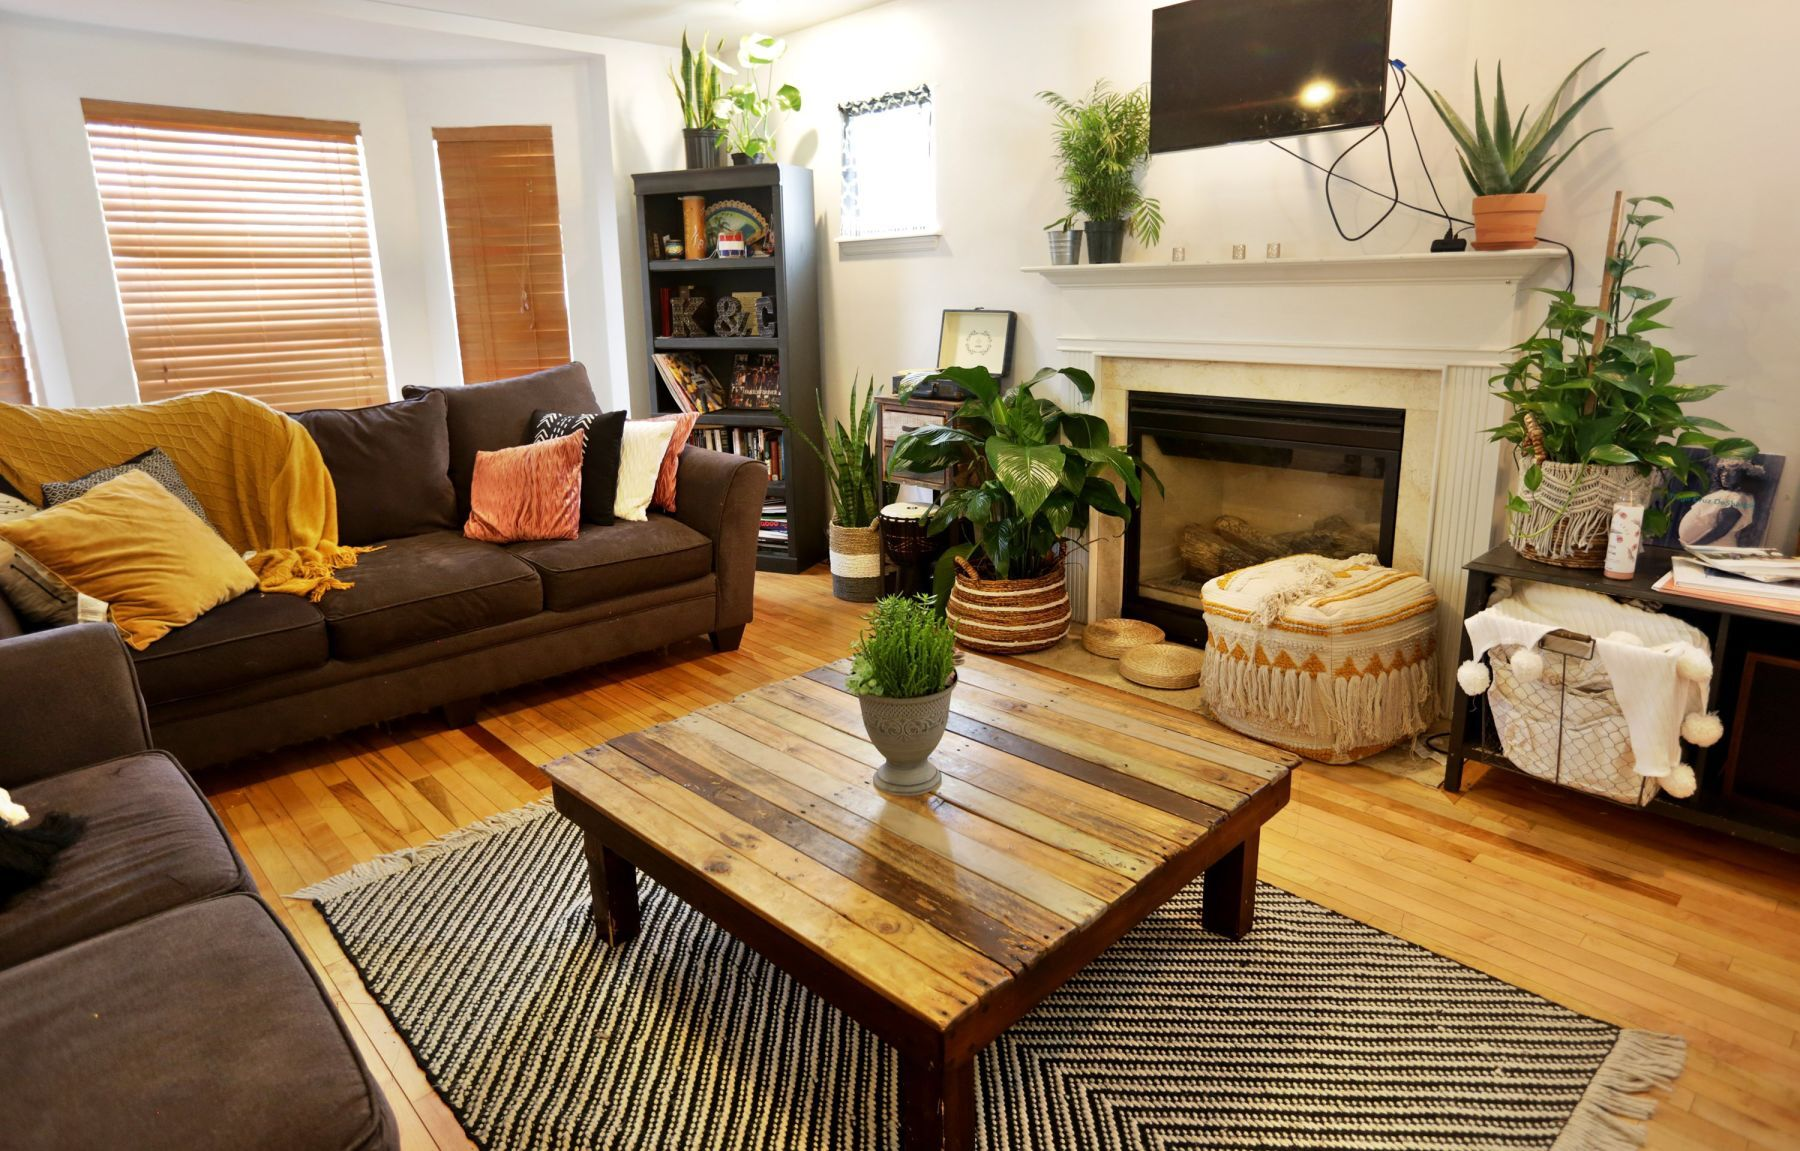 At Home with the DeShields of the CWE